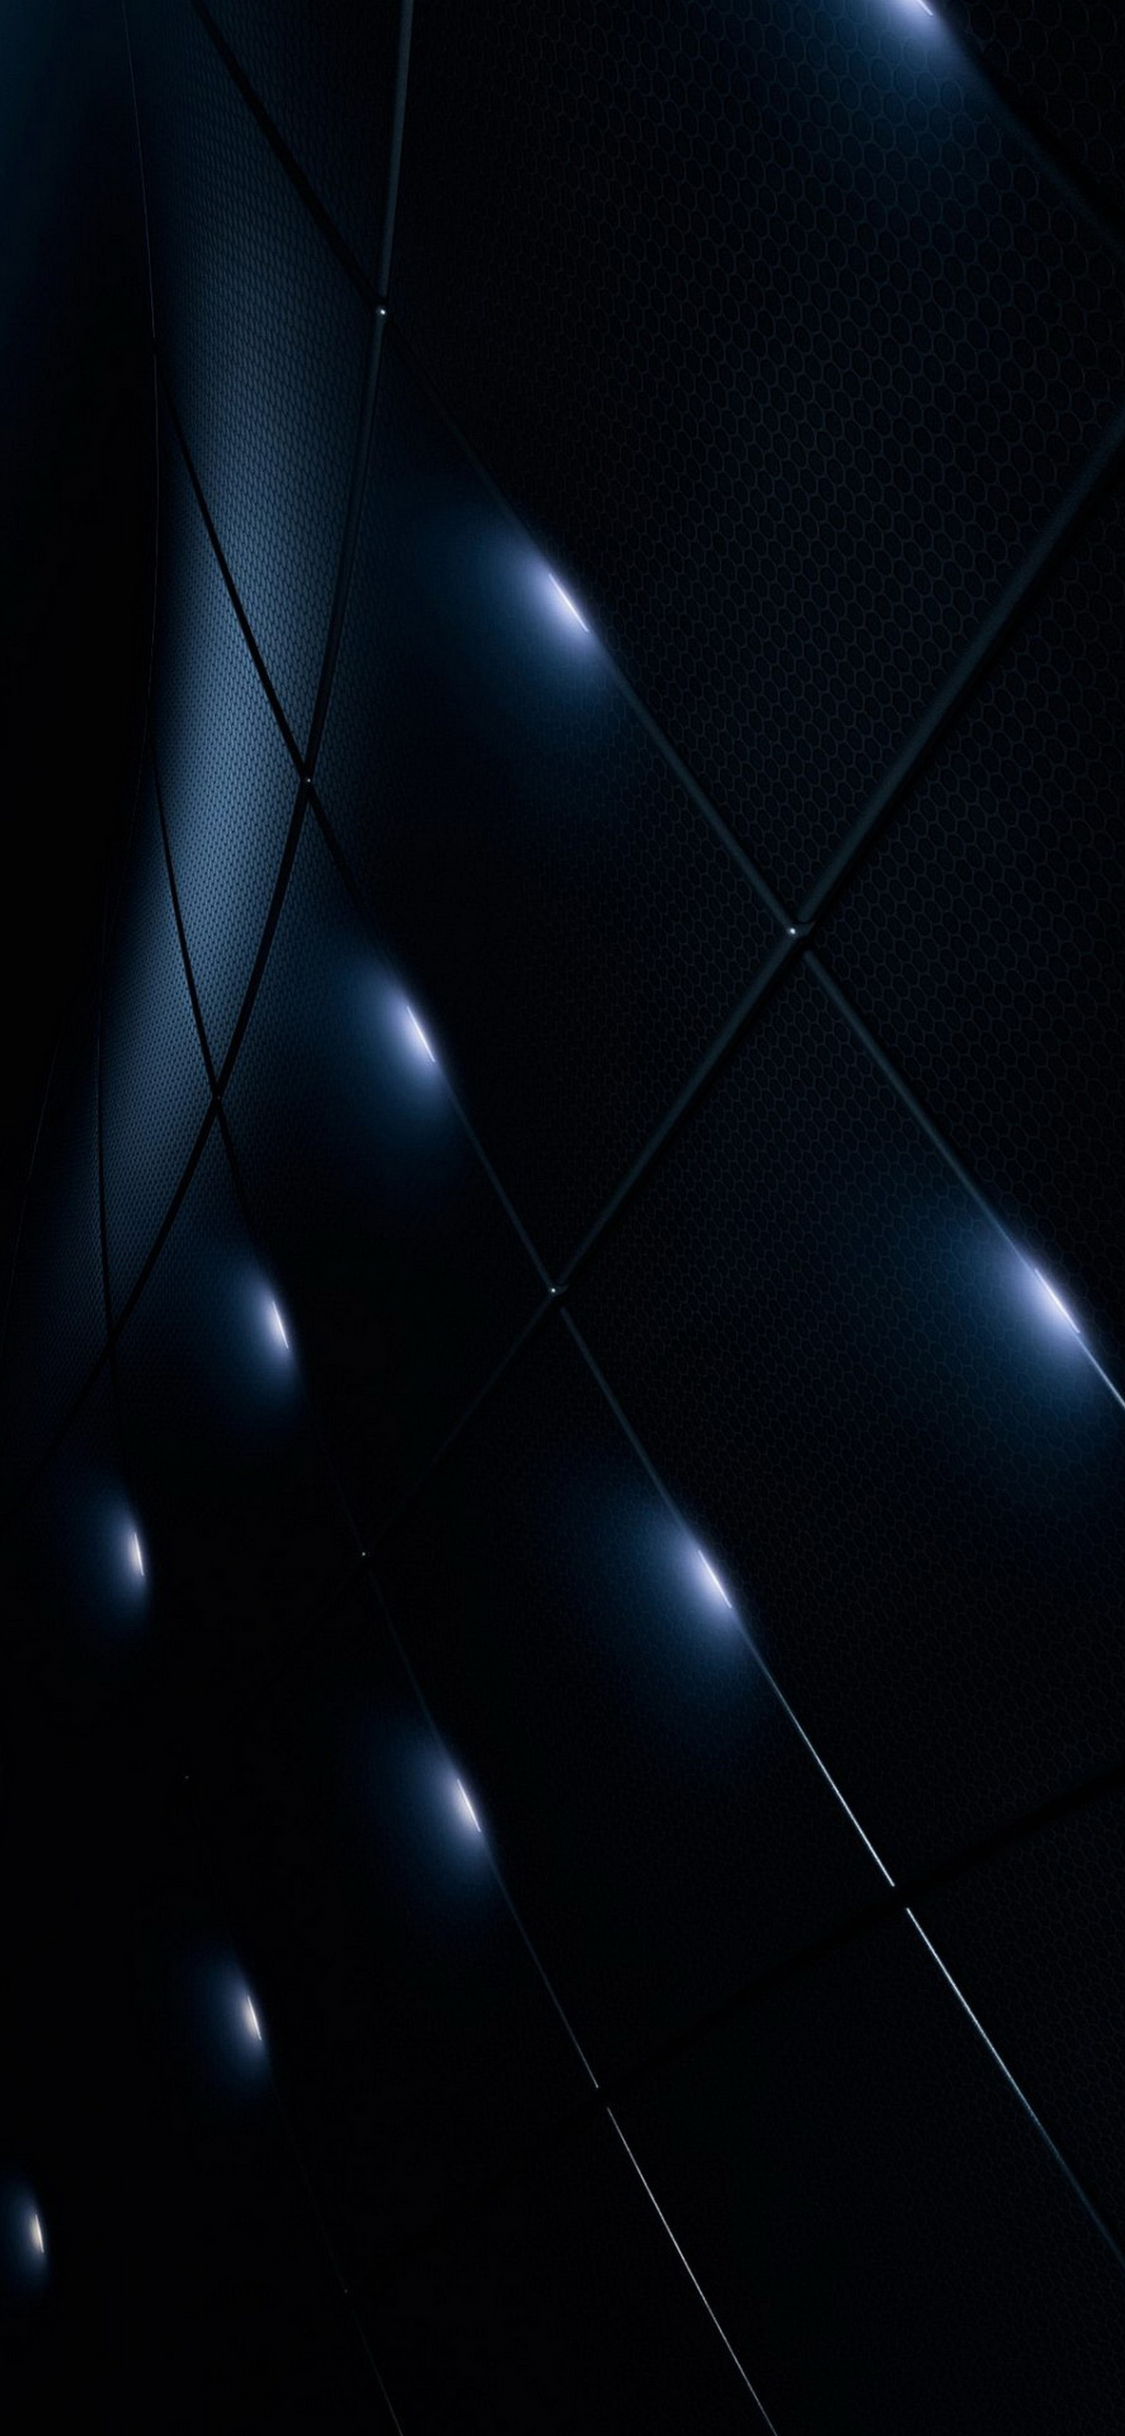 Free Download Black Abstract Lock Screen 1440x2560 Samsung Galaxy S5 Wallpaper Hd 1440x2560 For Your Desktop Mobile Tablet Explore 33 Samsung Galaxy S5 Black Wallpaper Samsung Galaxy Wallpaper Free